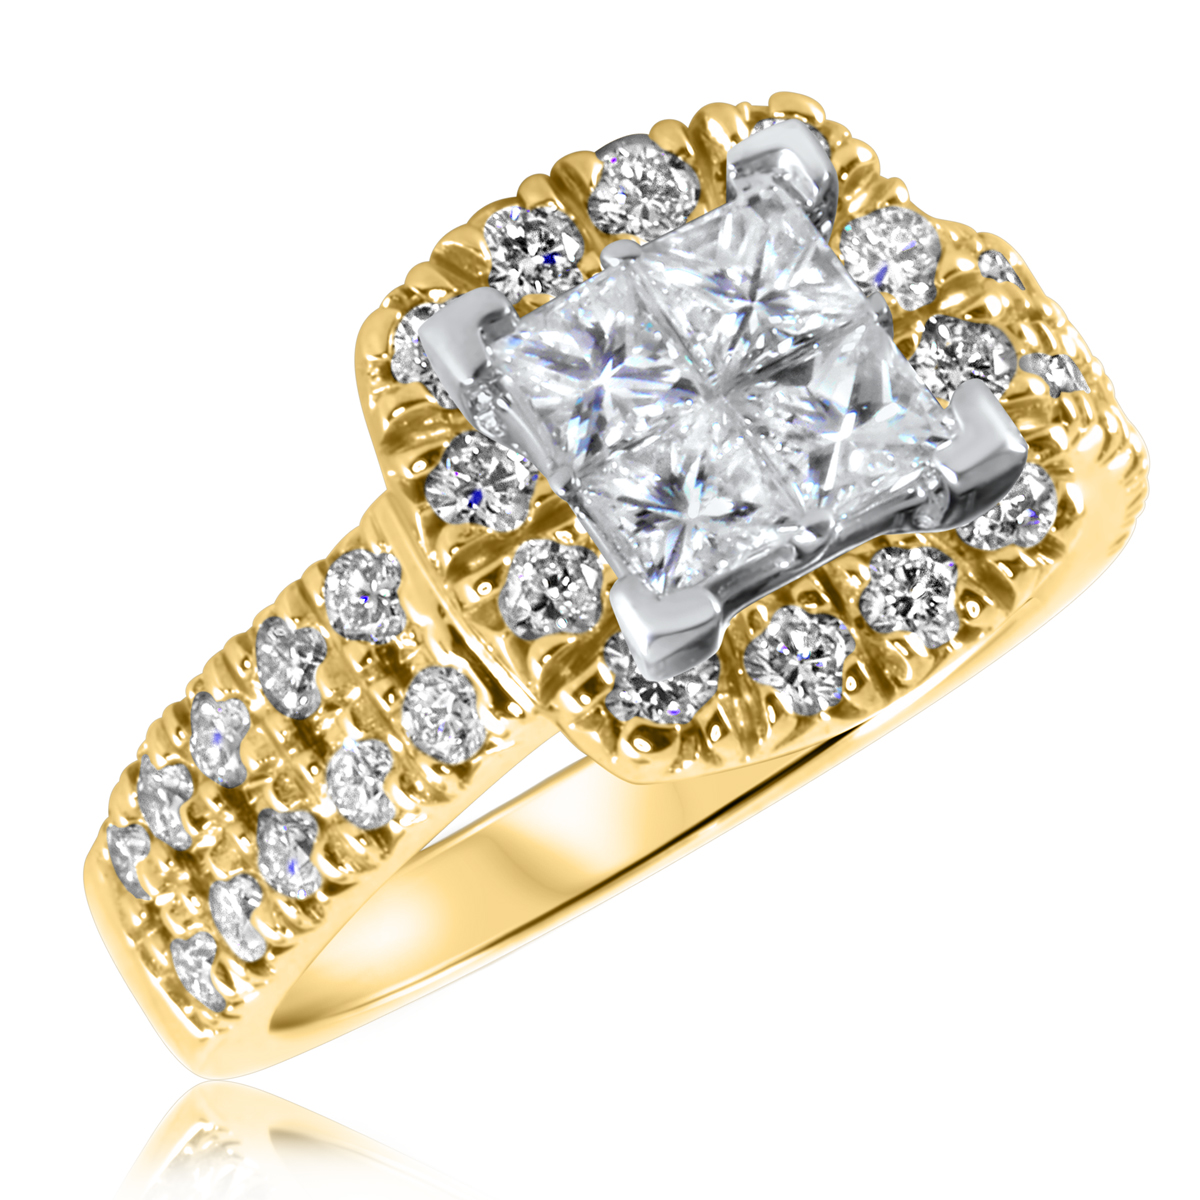 1 5/8 CT. T.W. Diamond Ladies Engagement Ring 14K Yellow Gold- Size 8